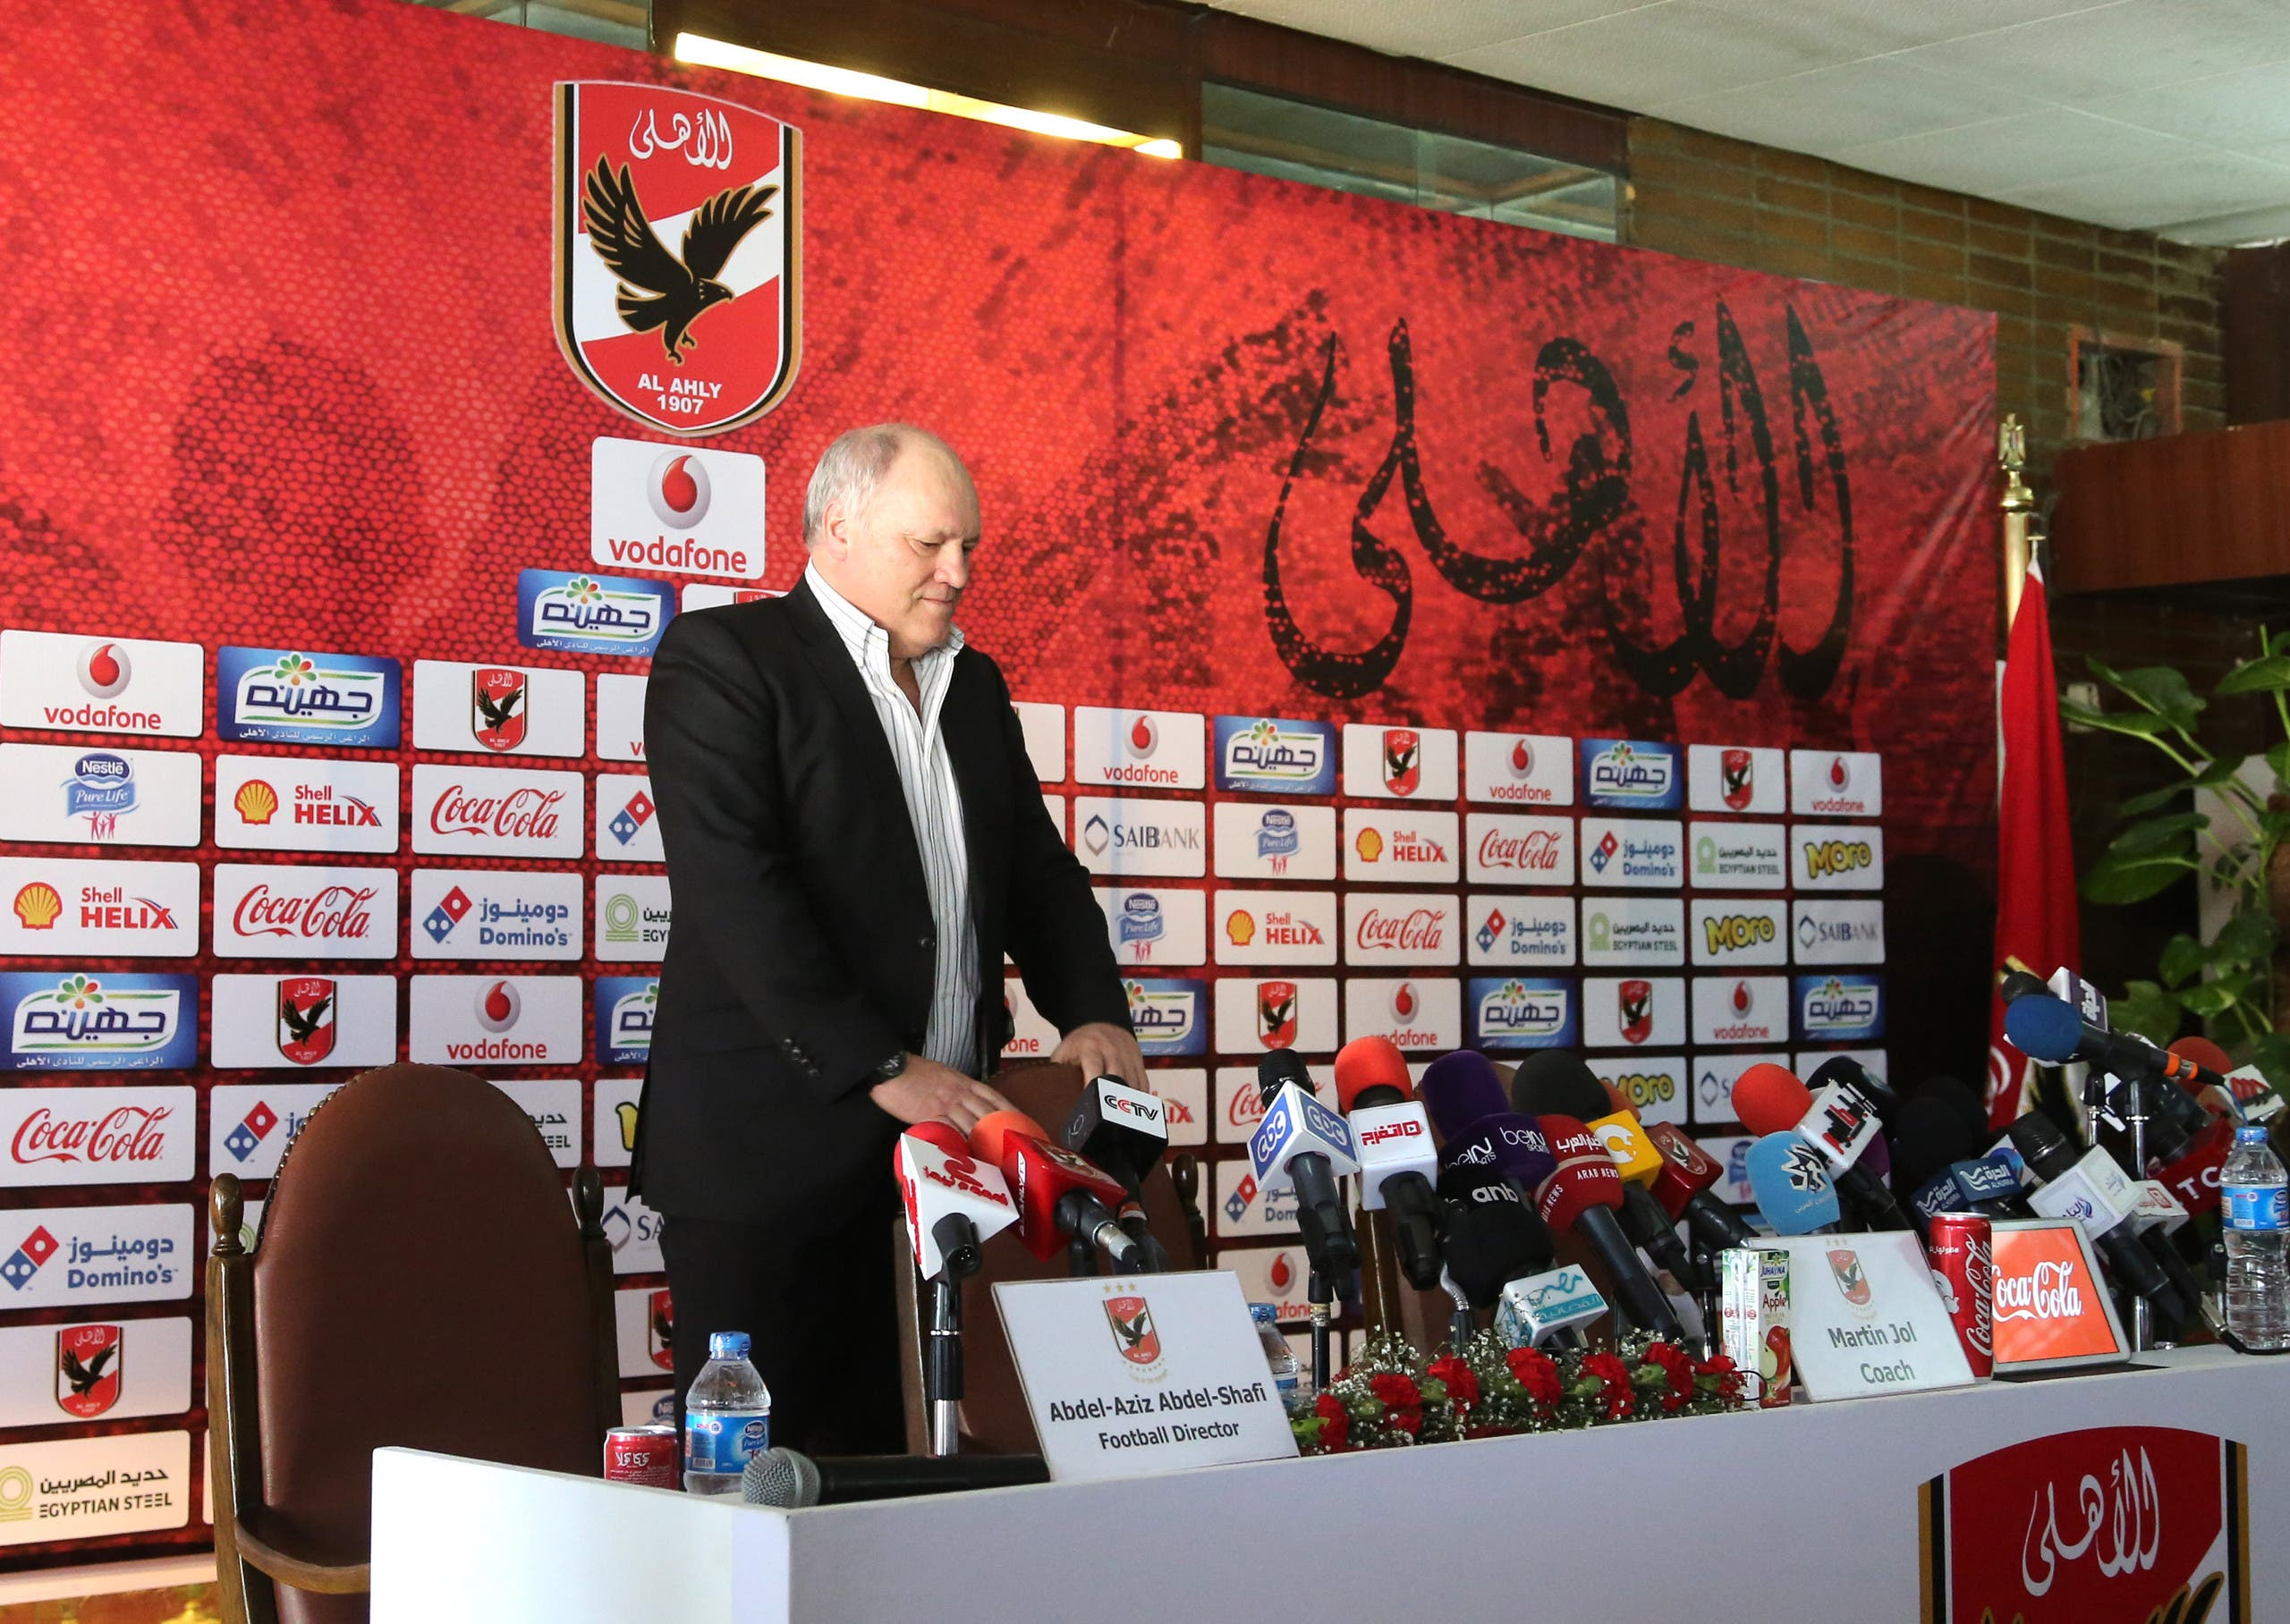 Former Tottenham manager Martin Jol arrives to attend a press conference in Al-Ahly club as he was unveiled as the new coach for Egyptian Premier League leaders Al-Ahly. (Reuters)